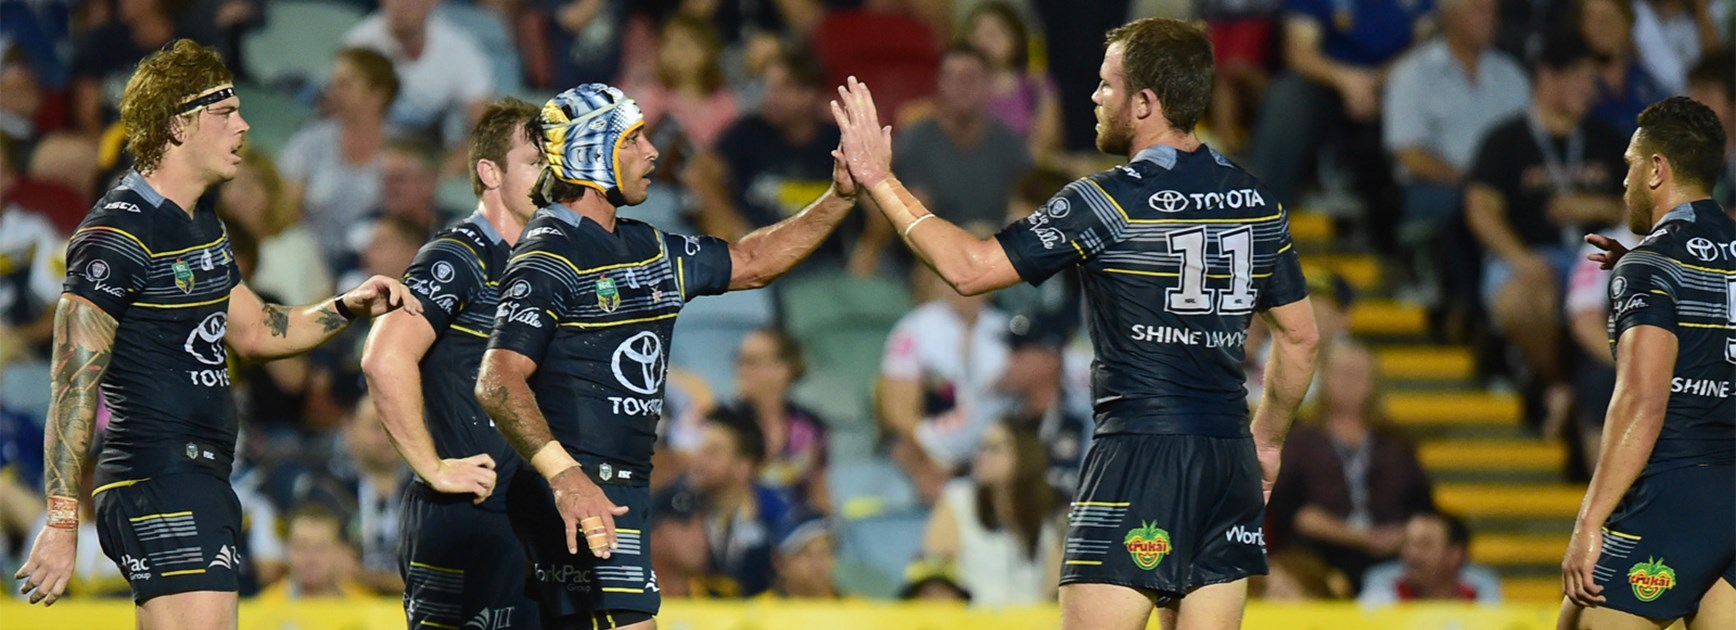 The Cowboys were at their impressive best against the Dragons on Saturday.